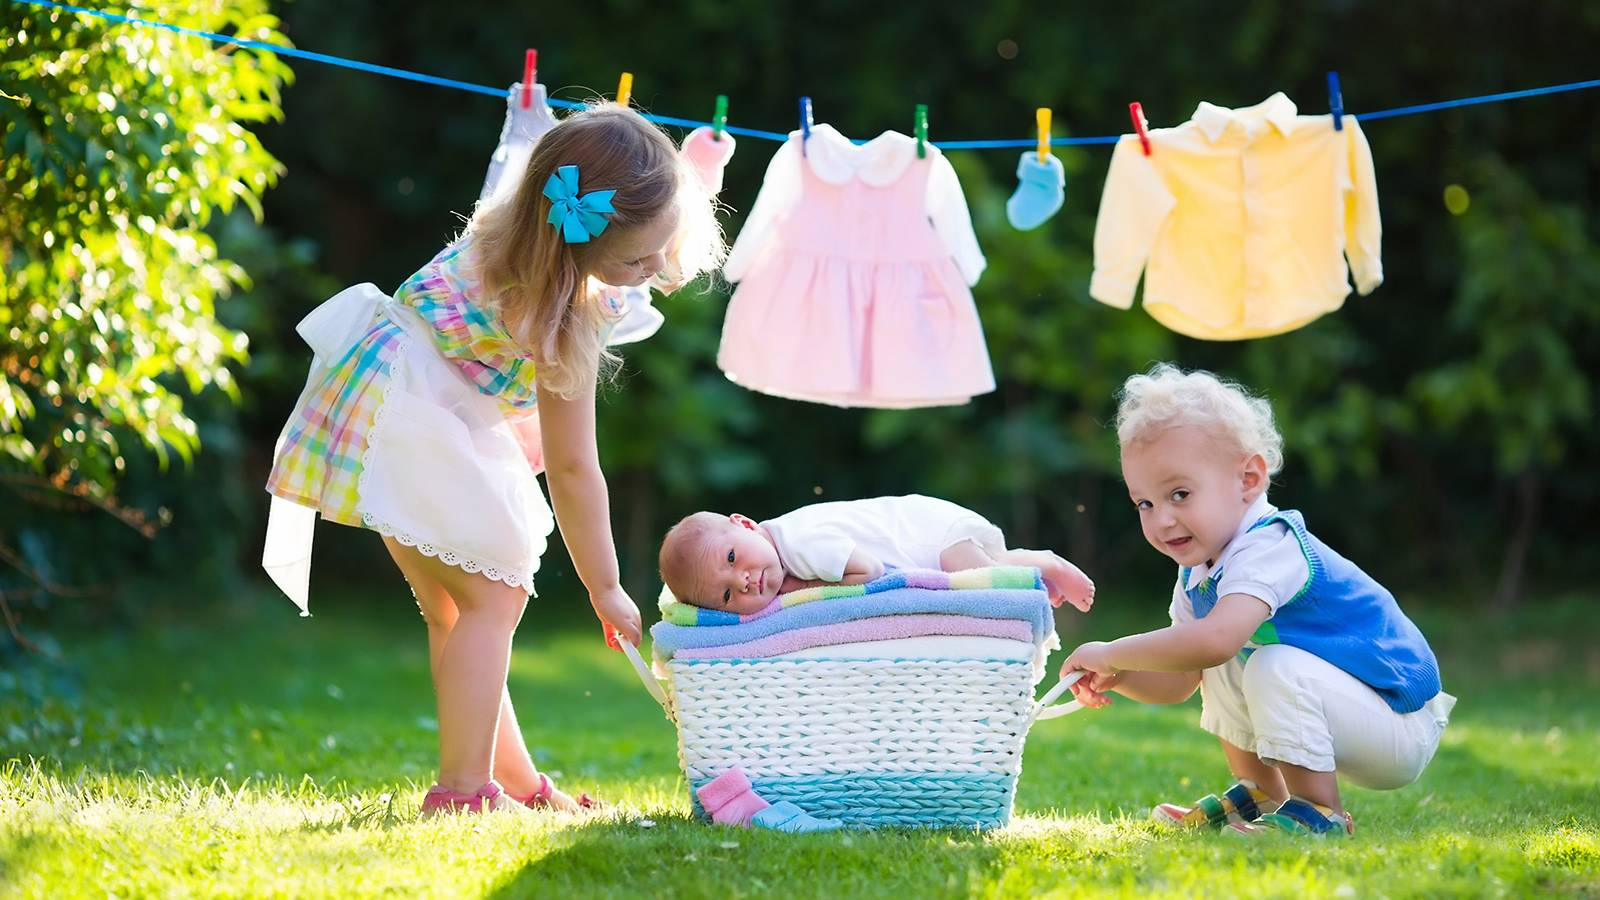 Babies-BUYER'S-GUIDE-7-best-laundry-detergents-for-baby-MAIN